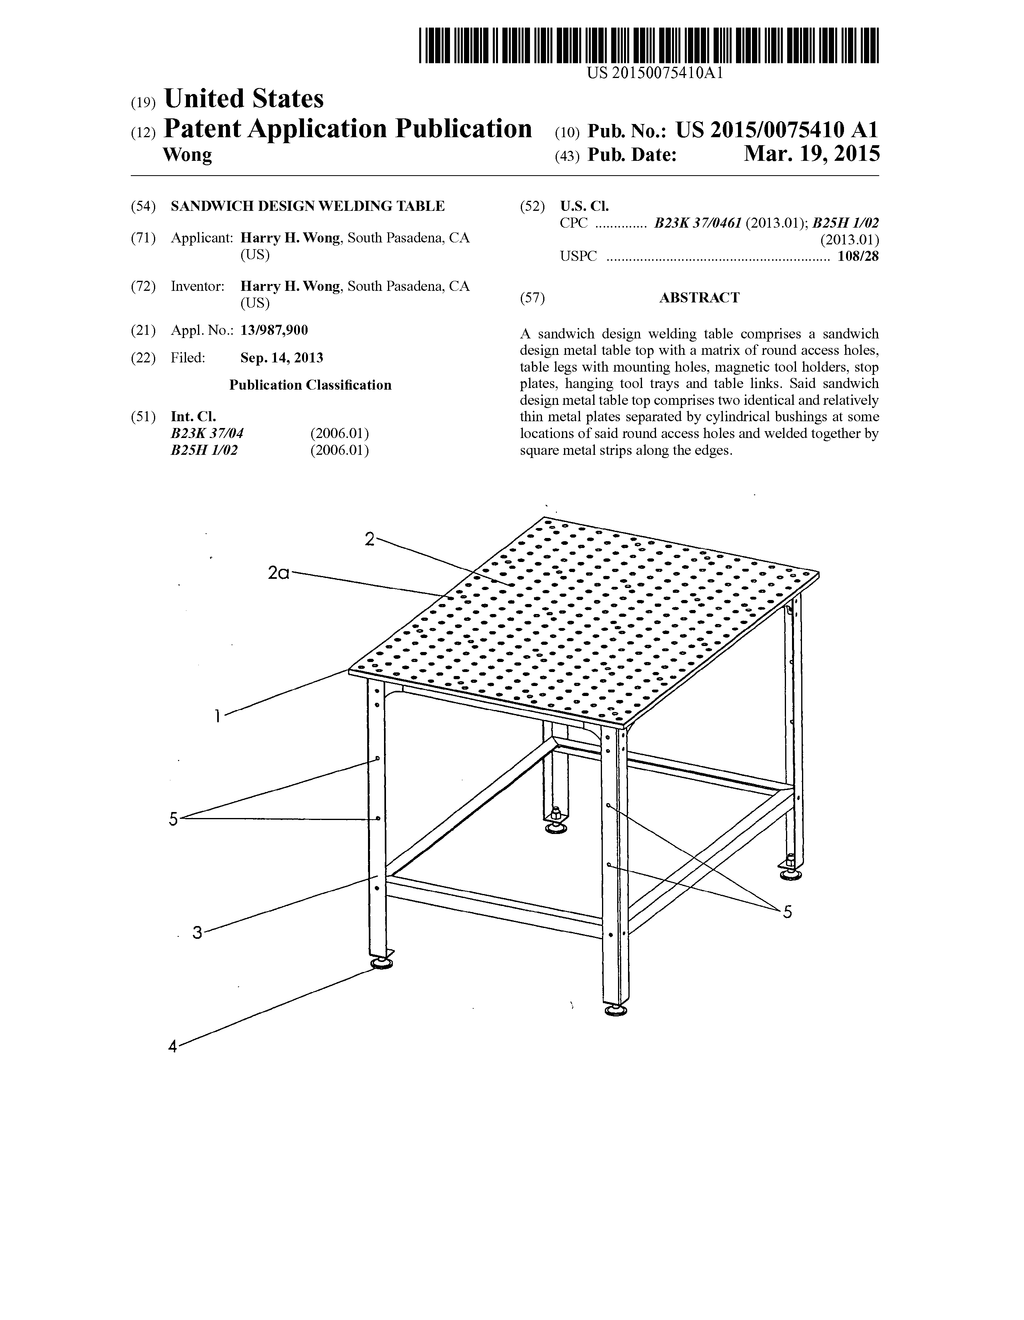 Sandwich Design Welding Table Diagram, Schematic, And Image 01 Basic Welding  Diagram Welding Chart Diagram